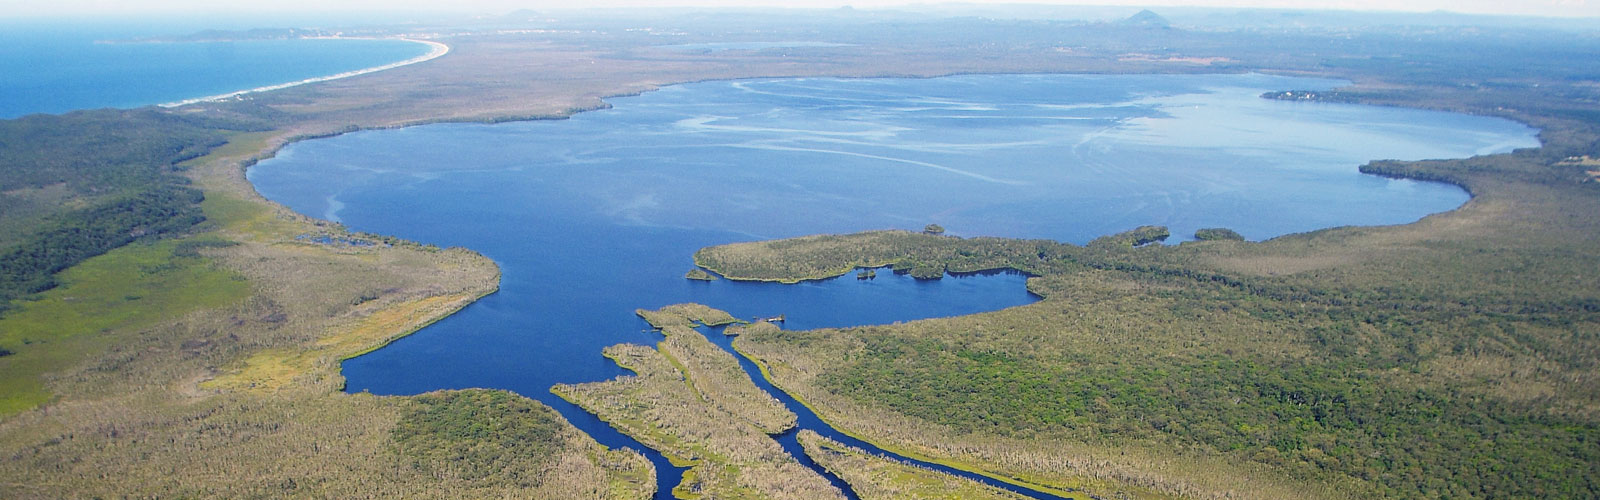 Biodiversity in the Noosa River System